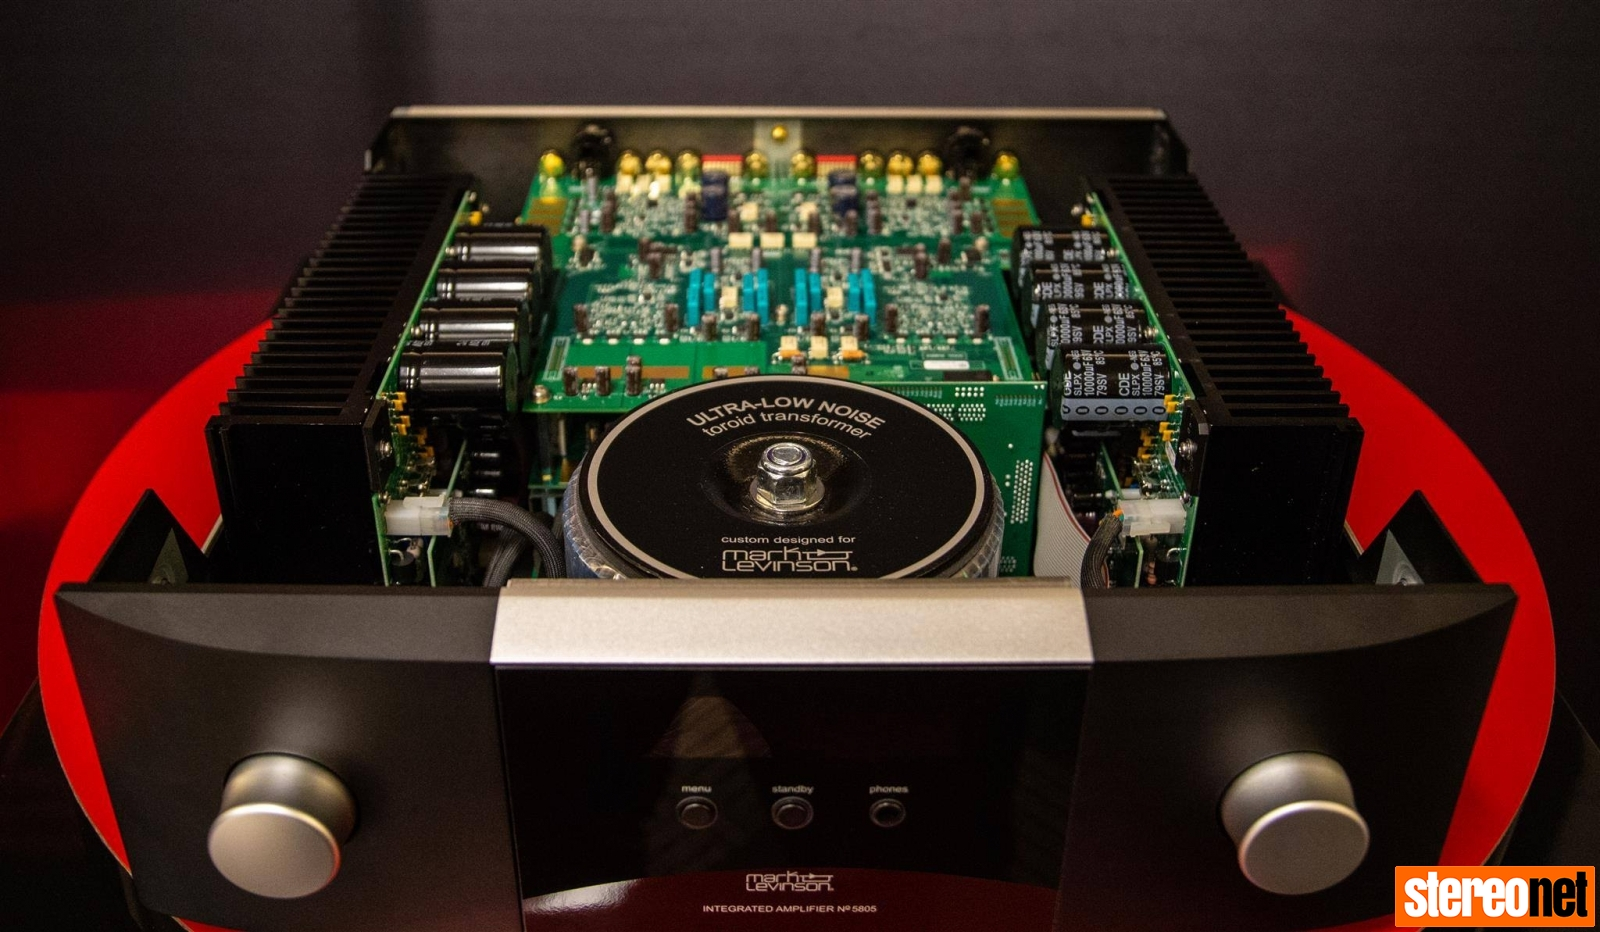 Mark Levinson 5805 internal